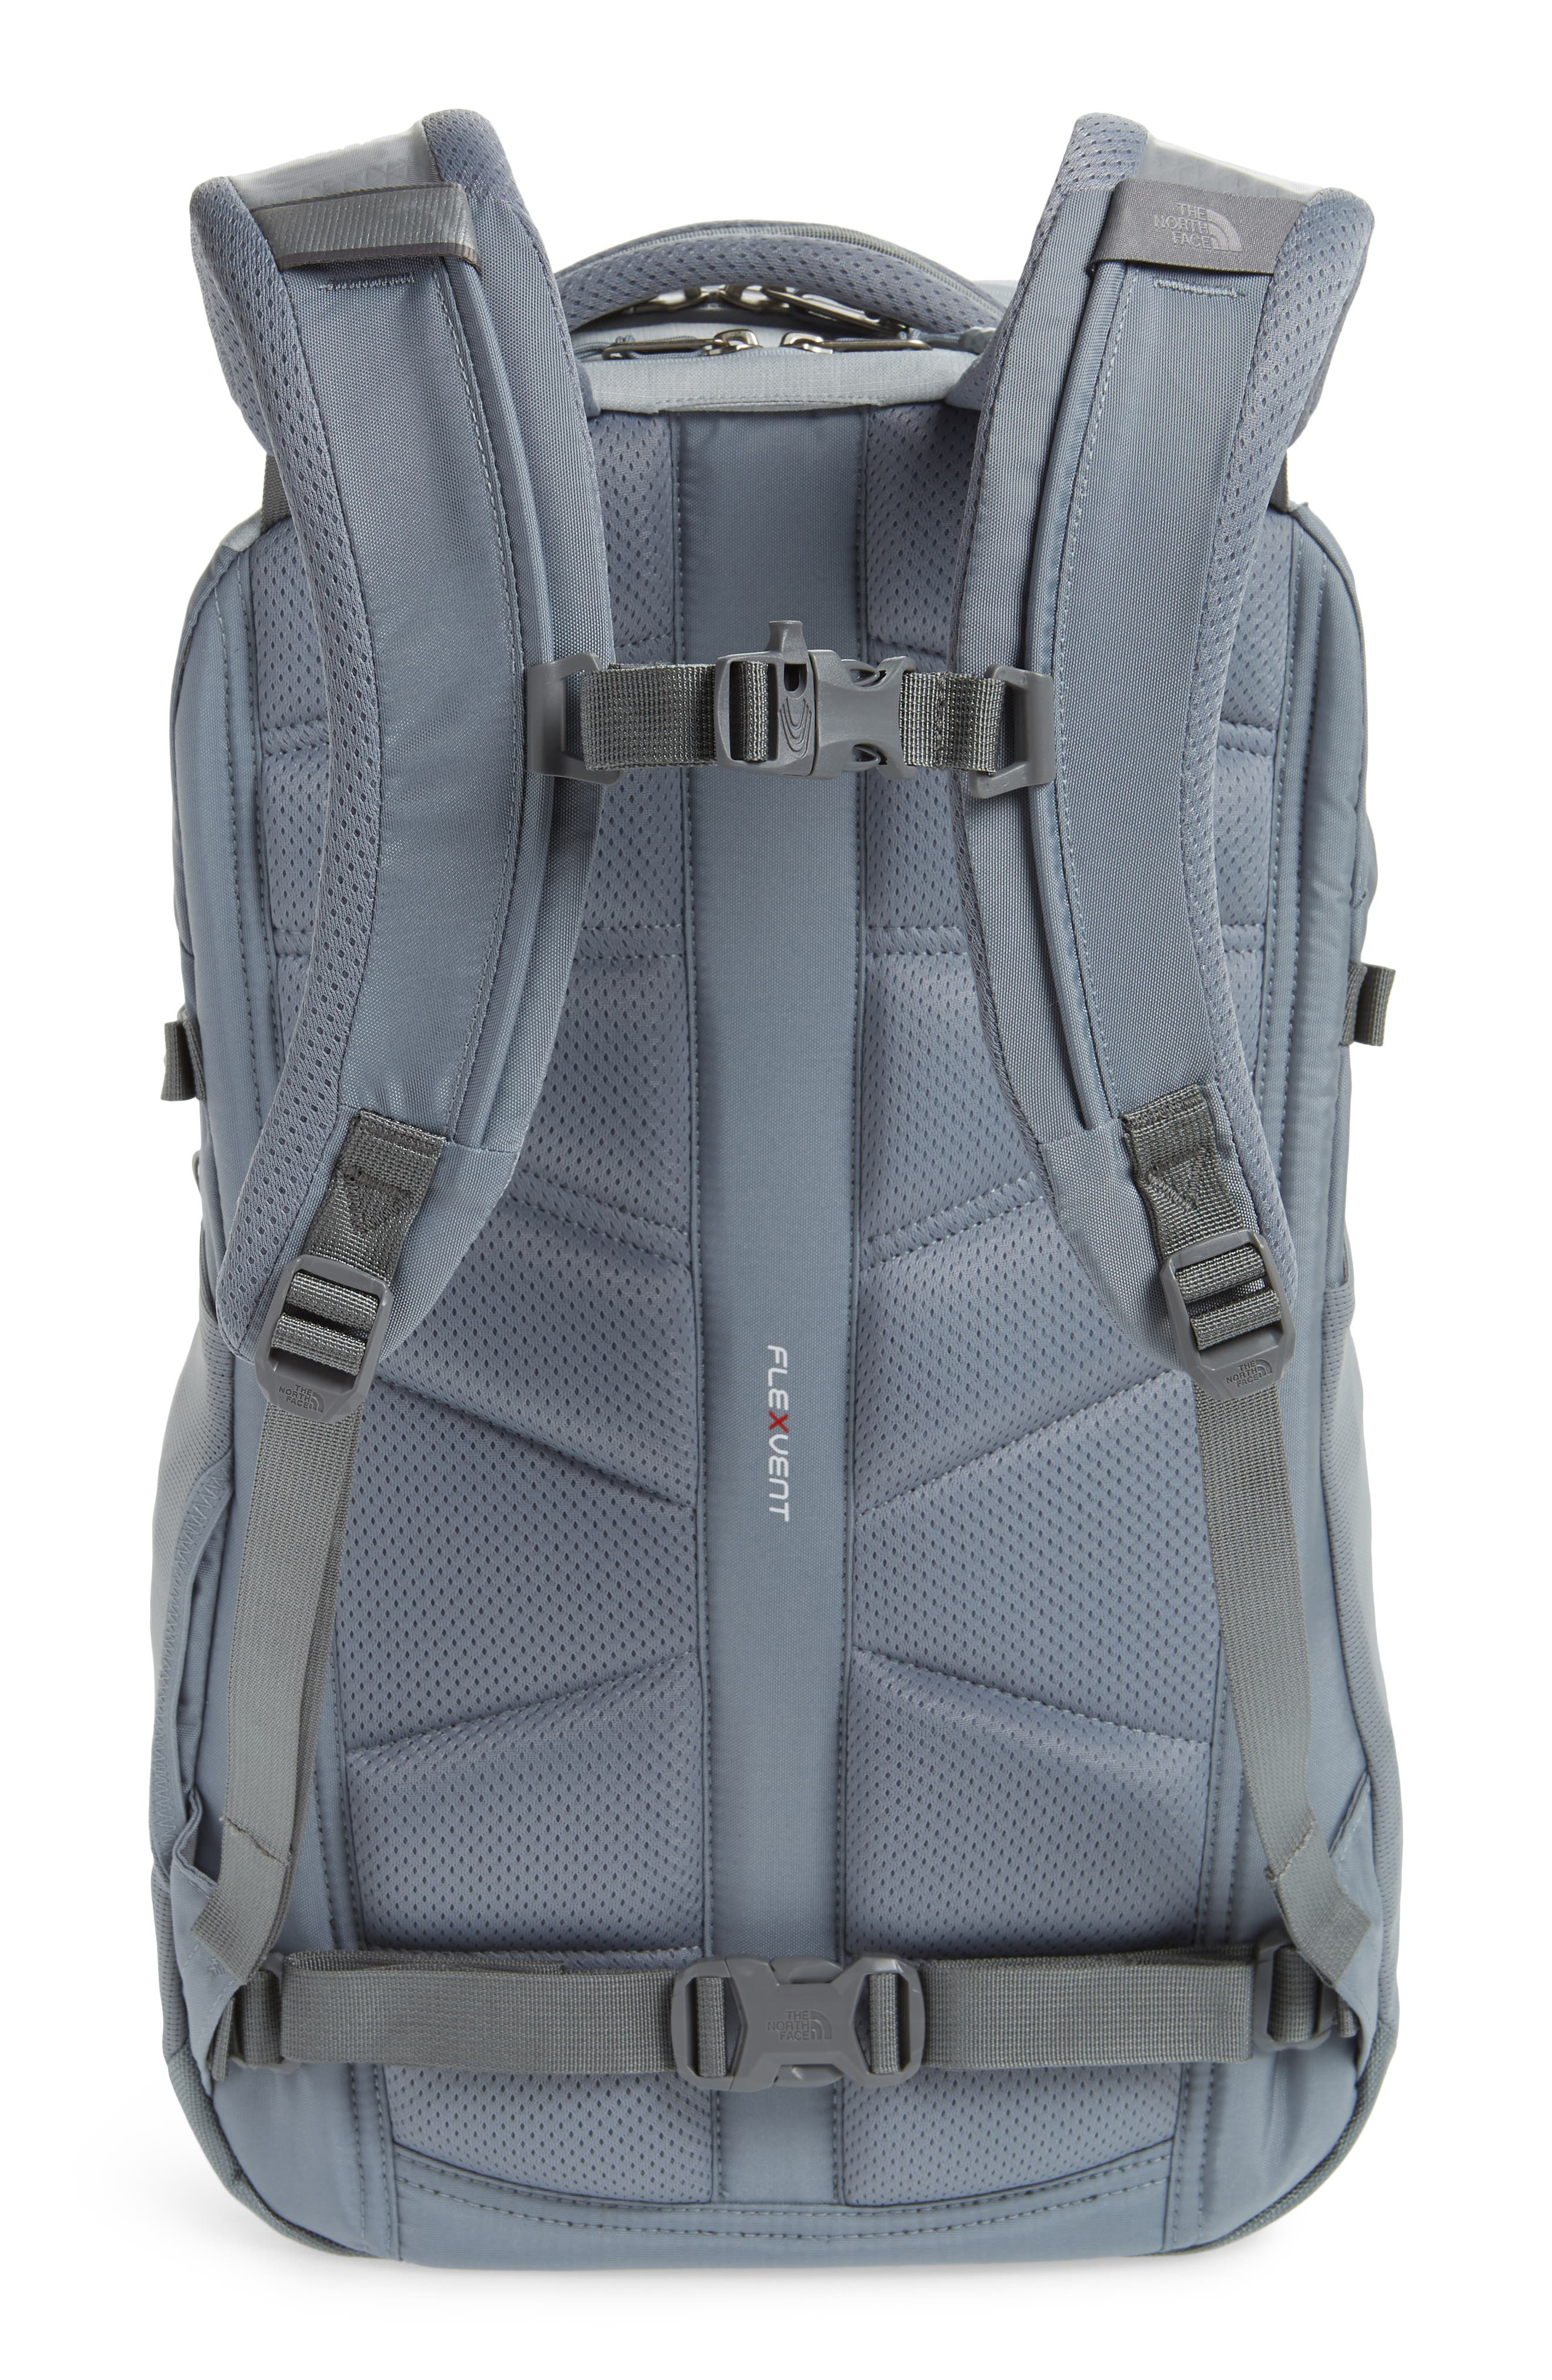 Recon Backpack,                             Alternate thumbnail 3, color,                             HIGH RISE GREY HEATHER/ GREY